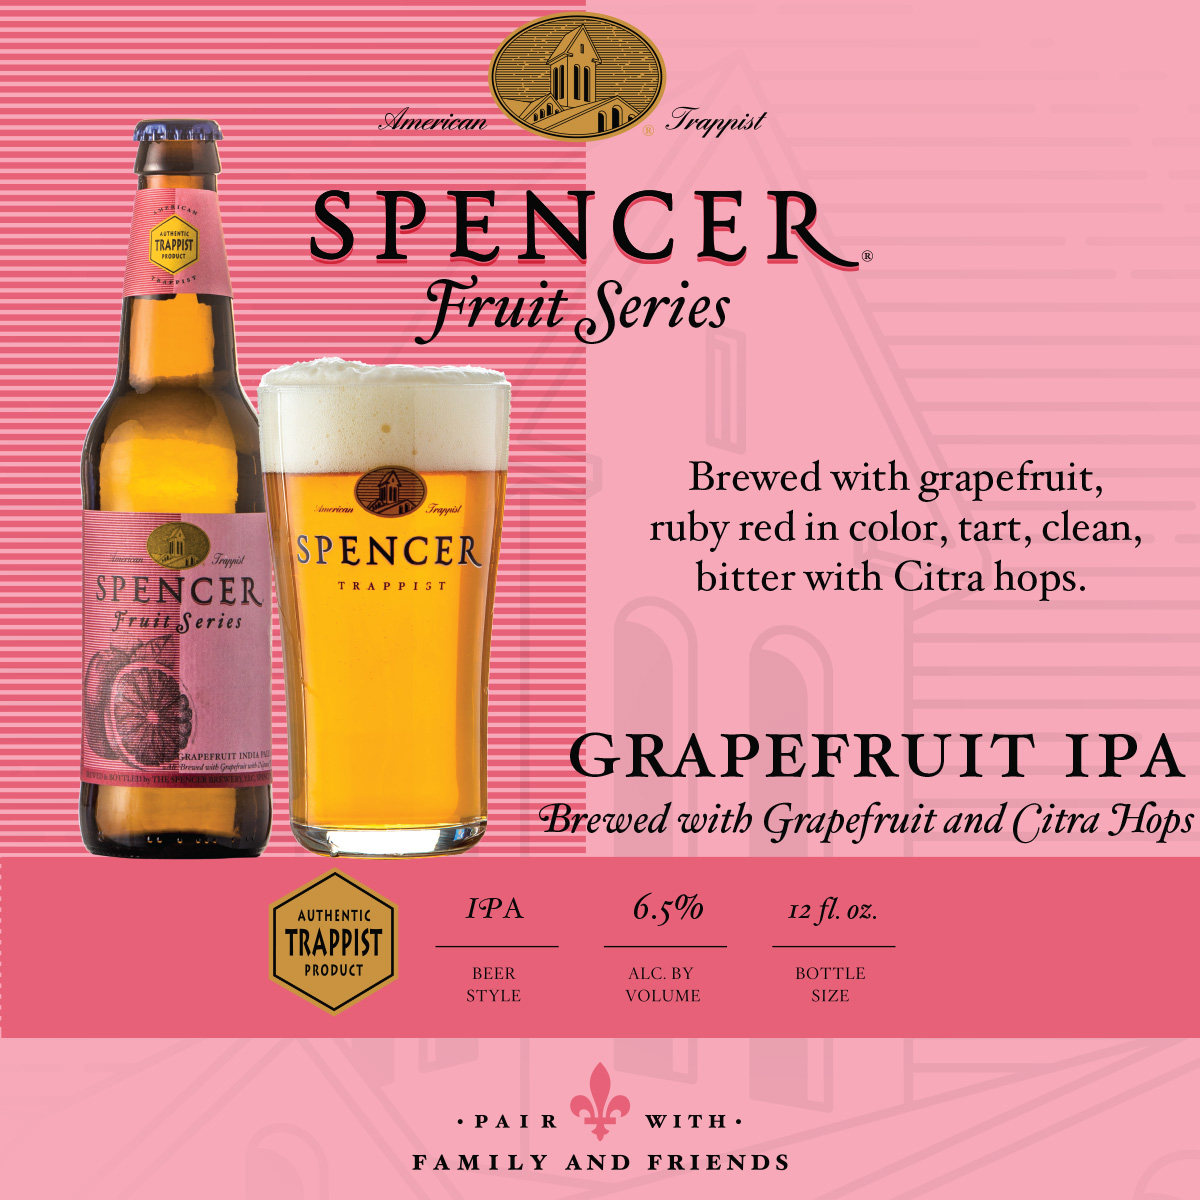 Grapefruit IPA Shelf Talker 4x4